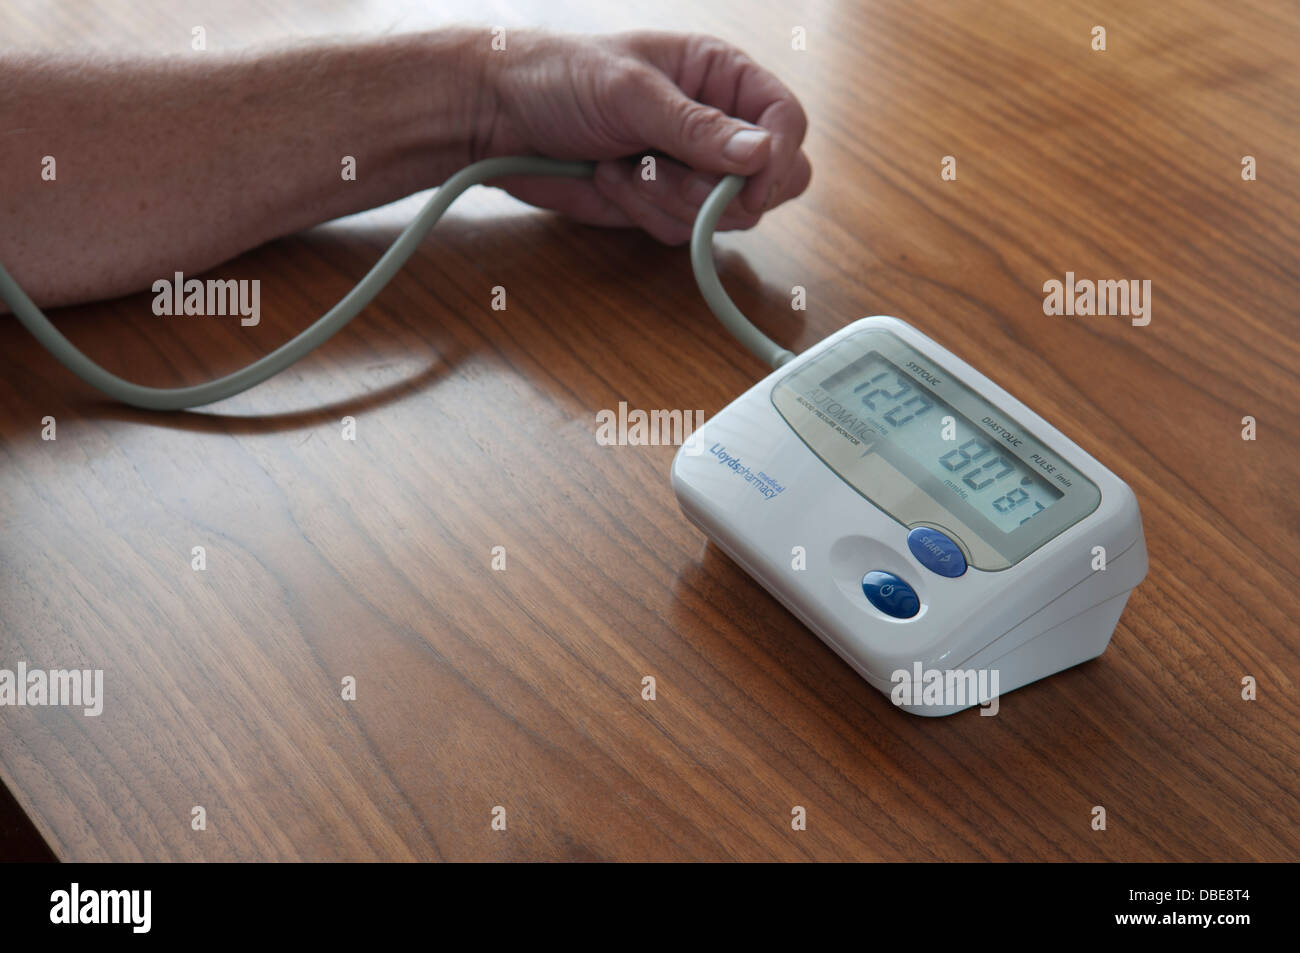 Do It Yourself Blood Pressure Machine Stock Photos & Do It